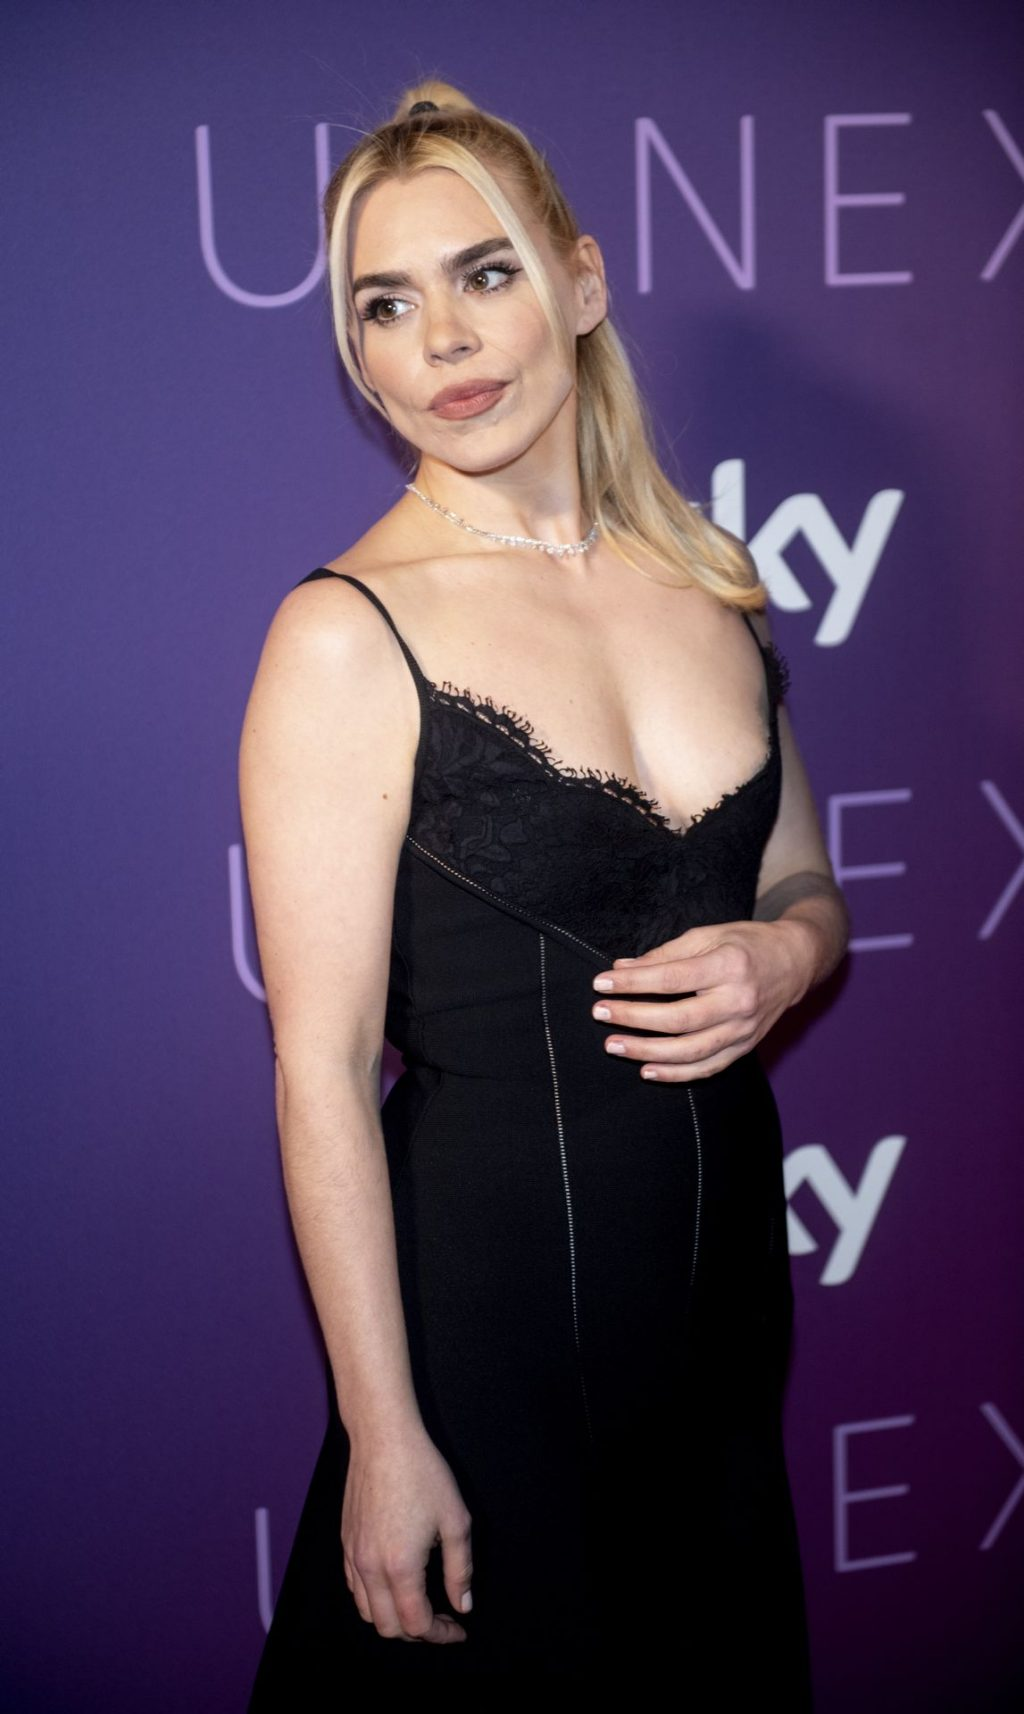 Billie Piper Sexy The Fappening Blog 38 1024x1714 - Billie Piper Smiles at the Sky Up Next Event (67 Photos)